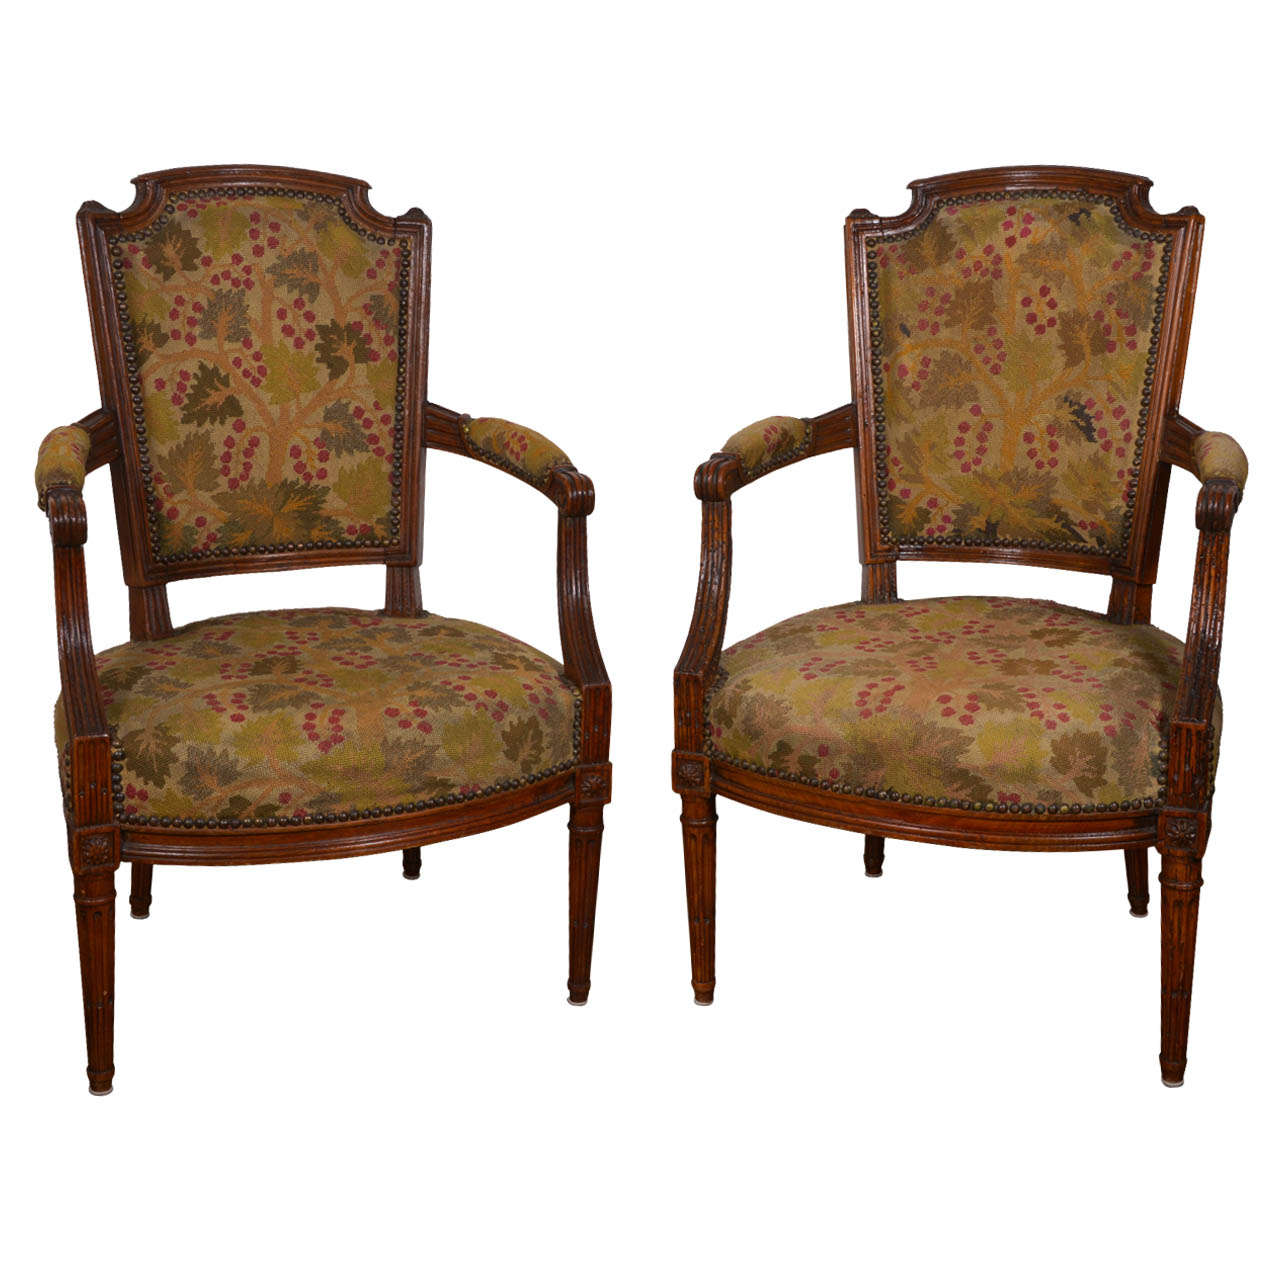 antique needlepoint chair rentals near me 18th century french louis xvi style chairs with